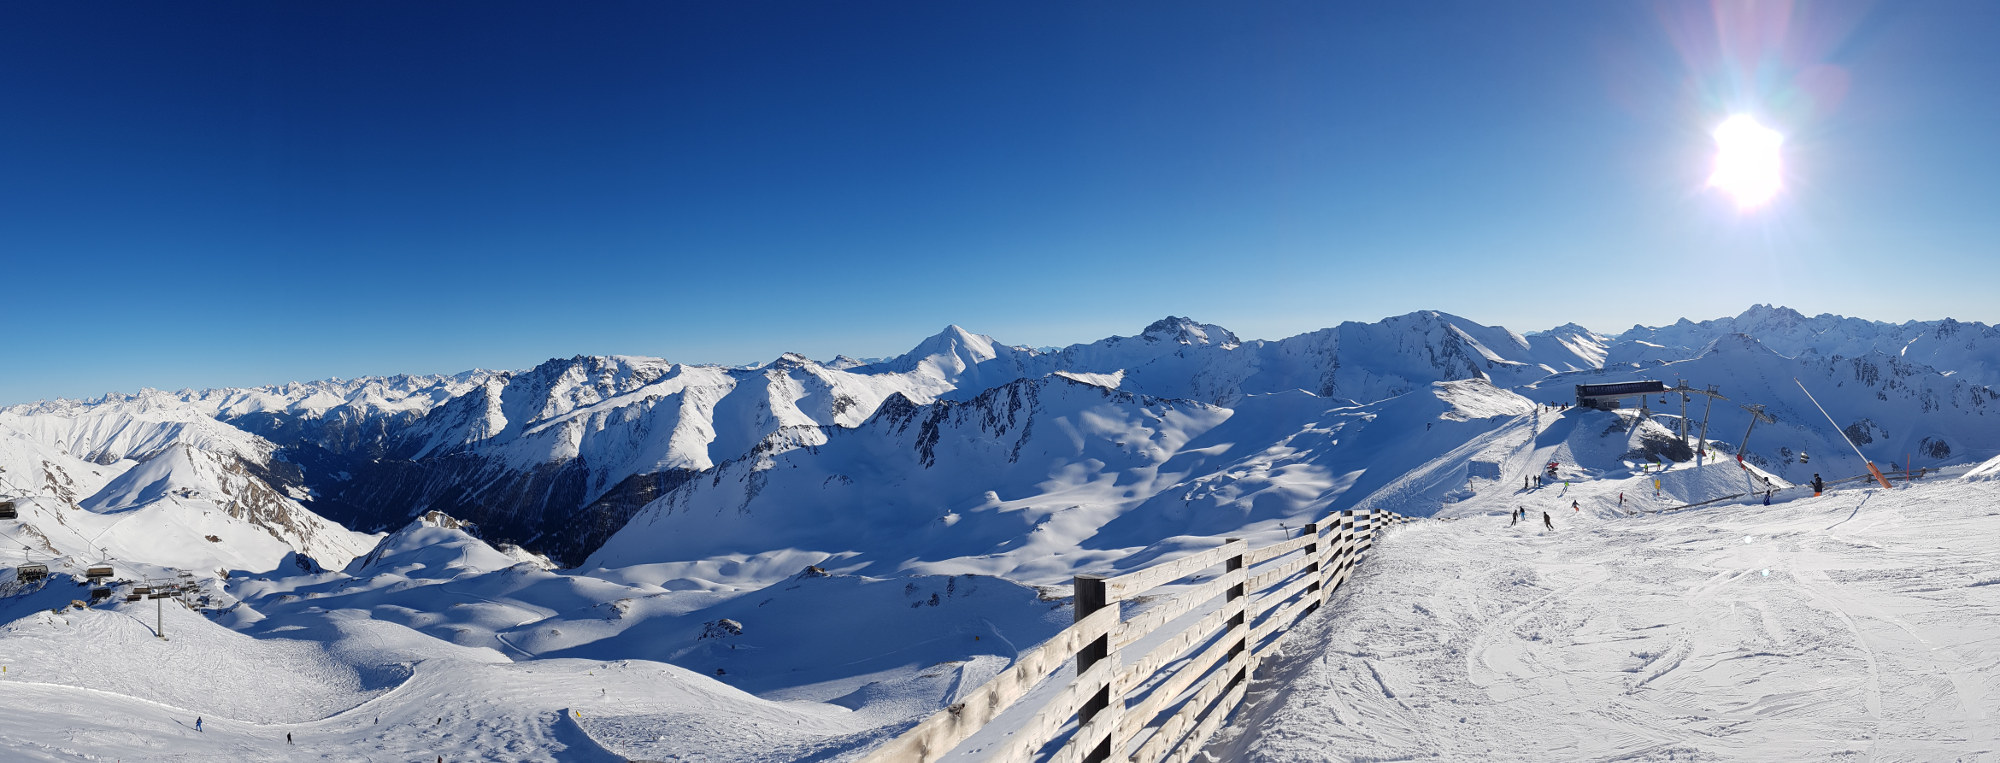 Samnaun Winter Panorama